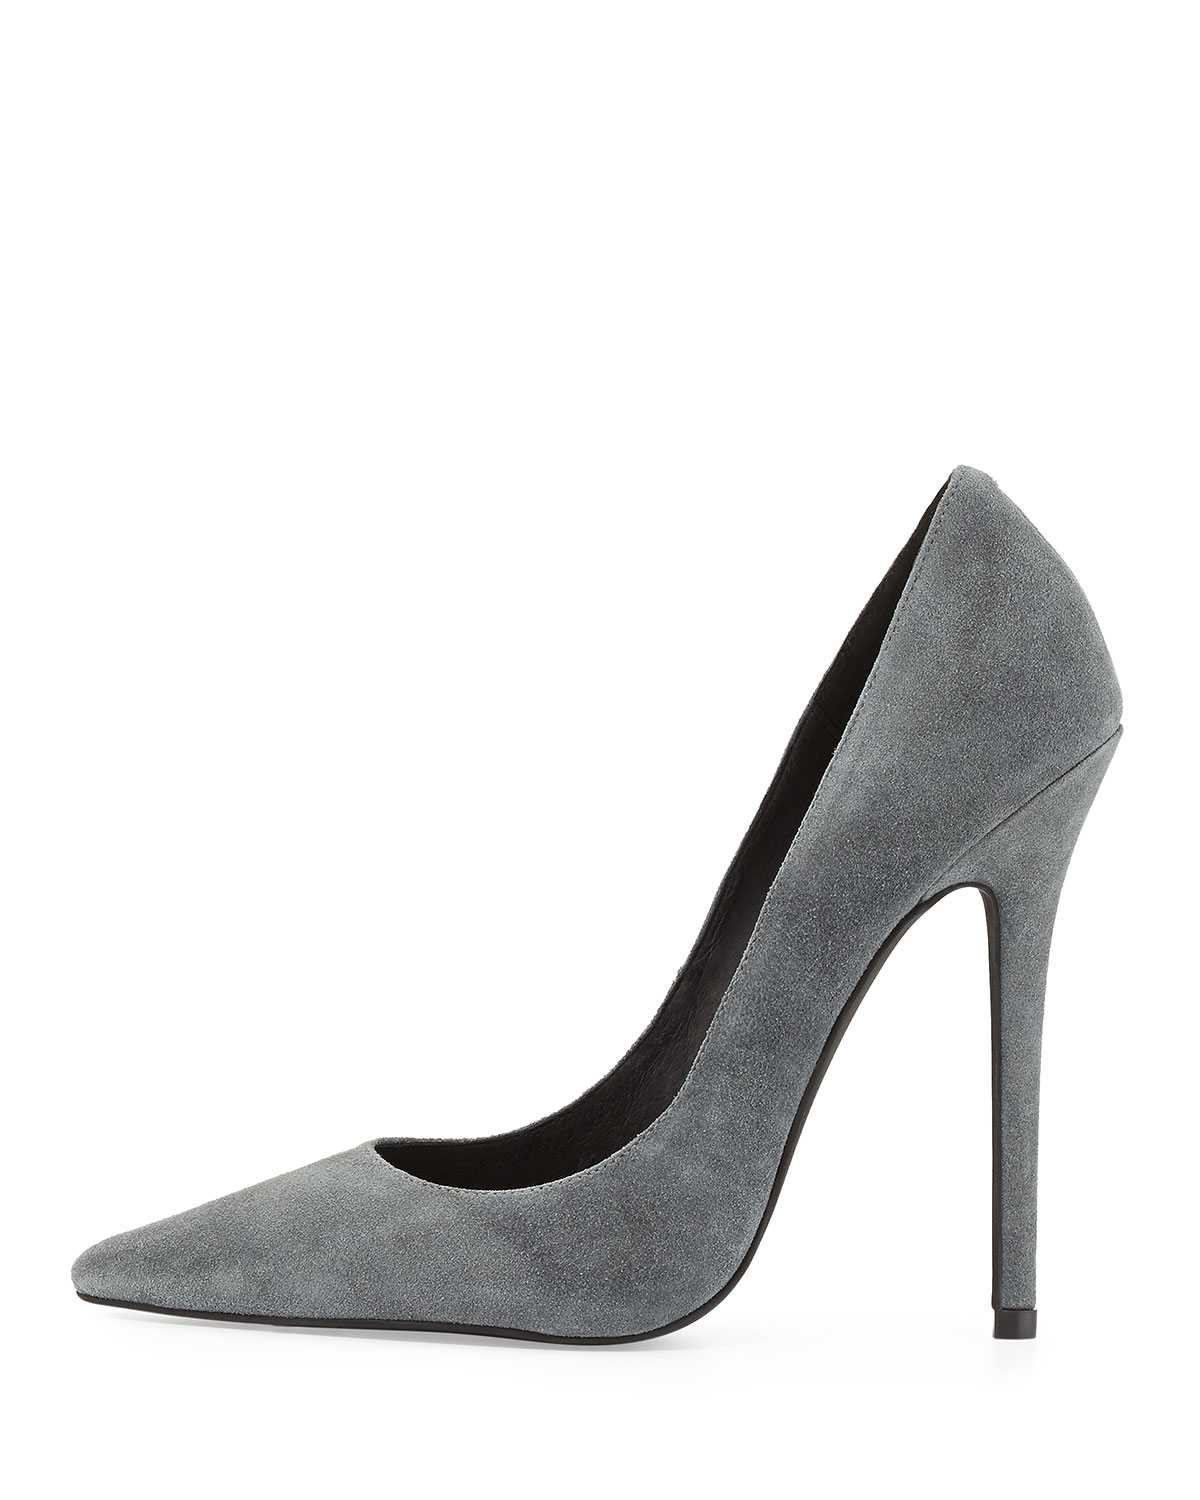 Jeffrey Campbell Darling Suede Pump, Dark Gray